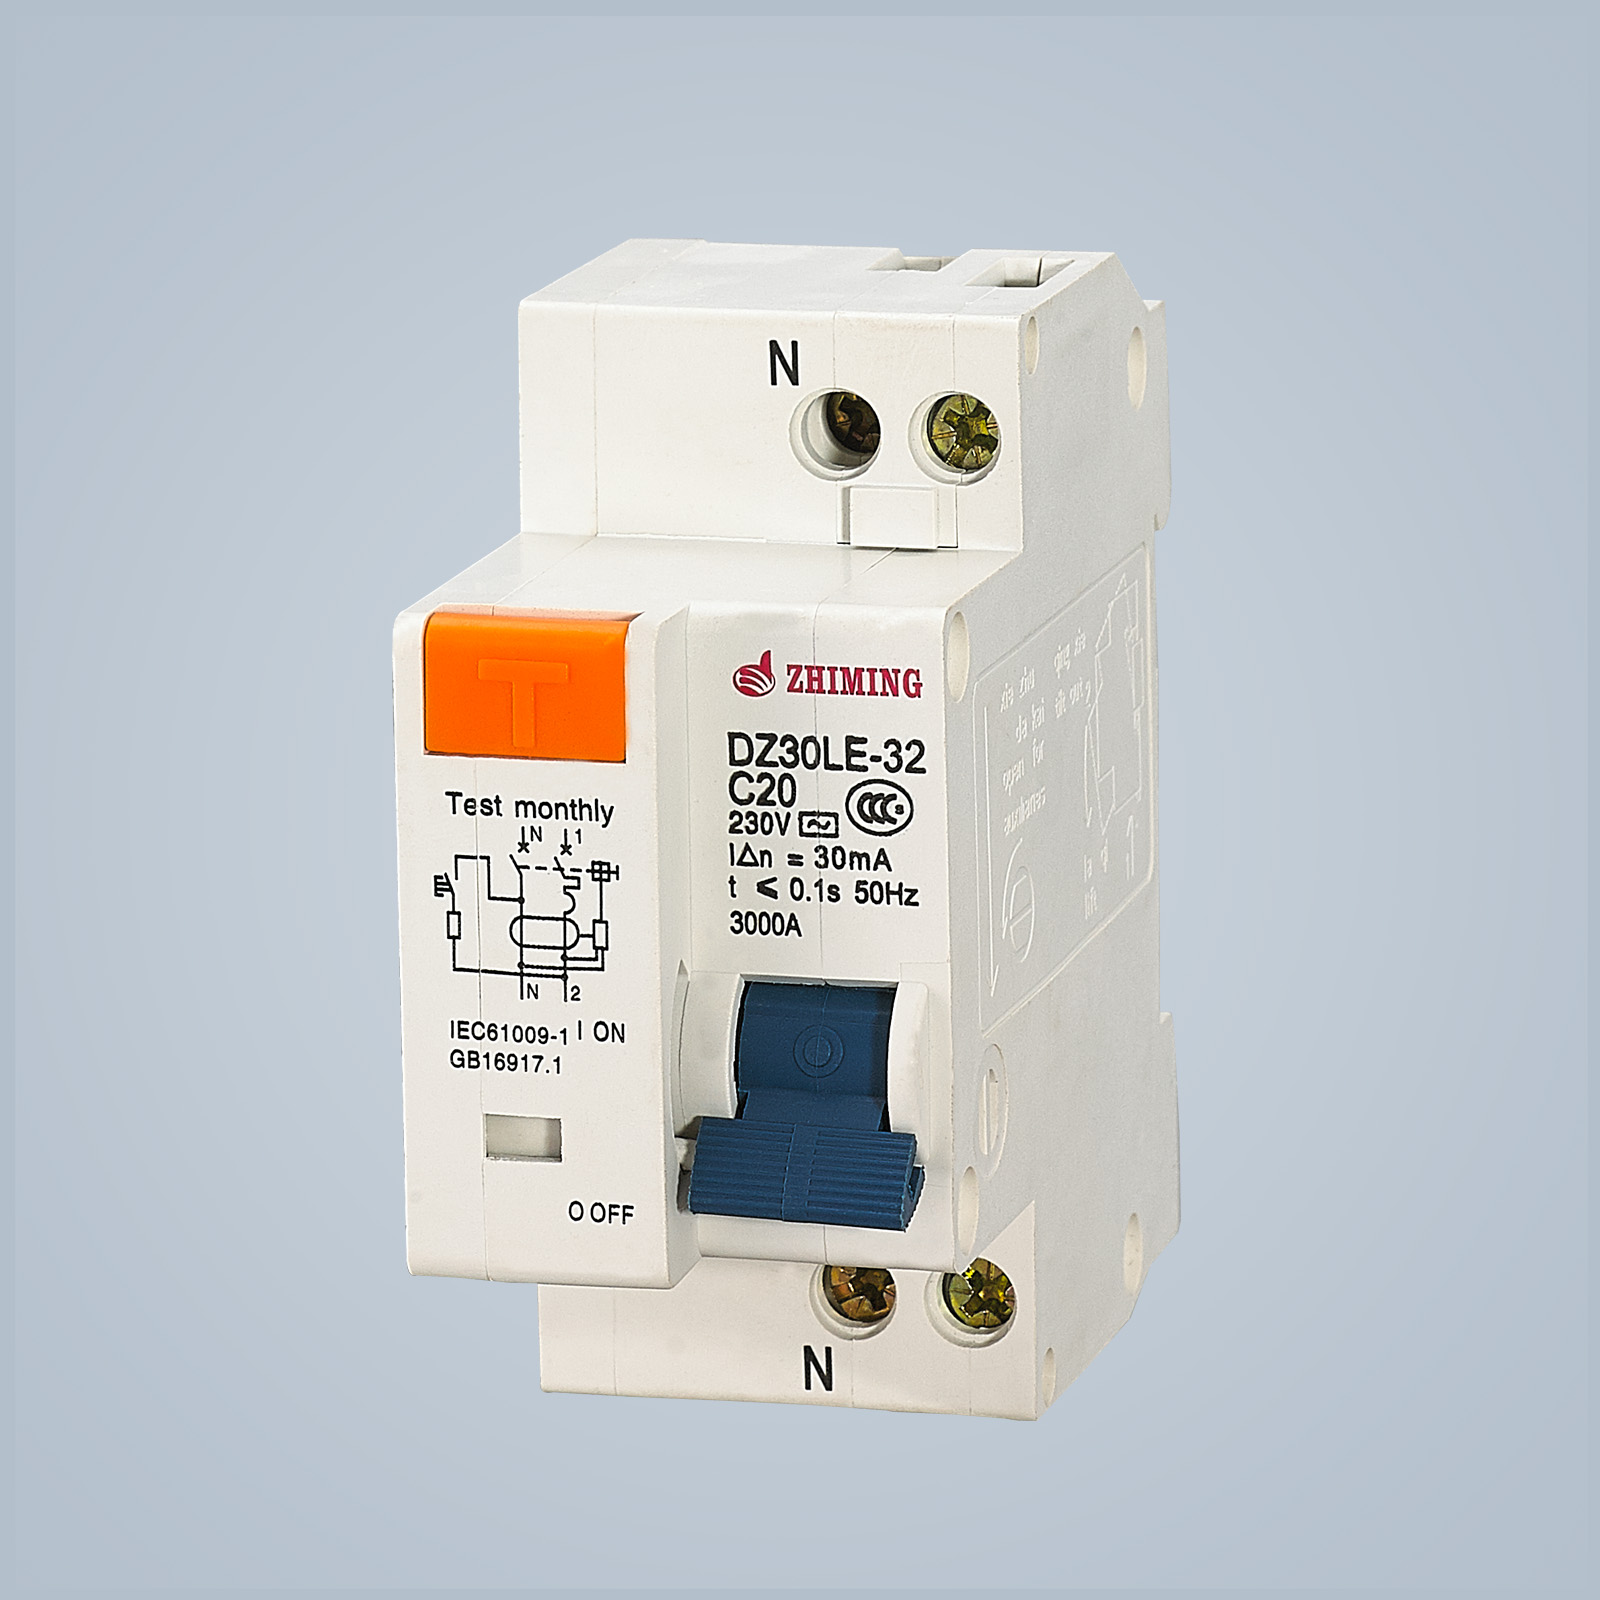 DZ30LE-32 Residual Current Operated Circuit Breaker